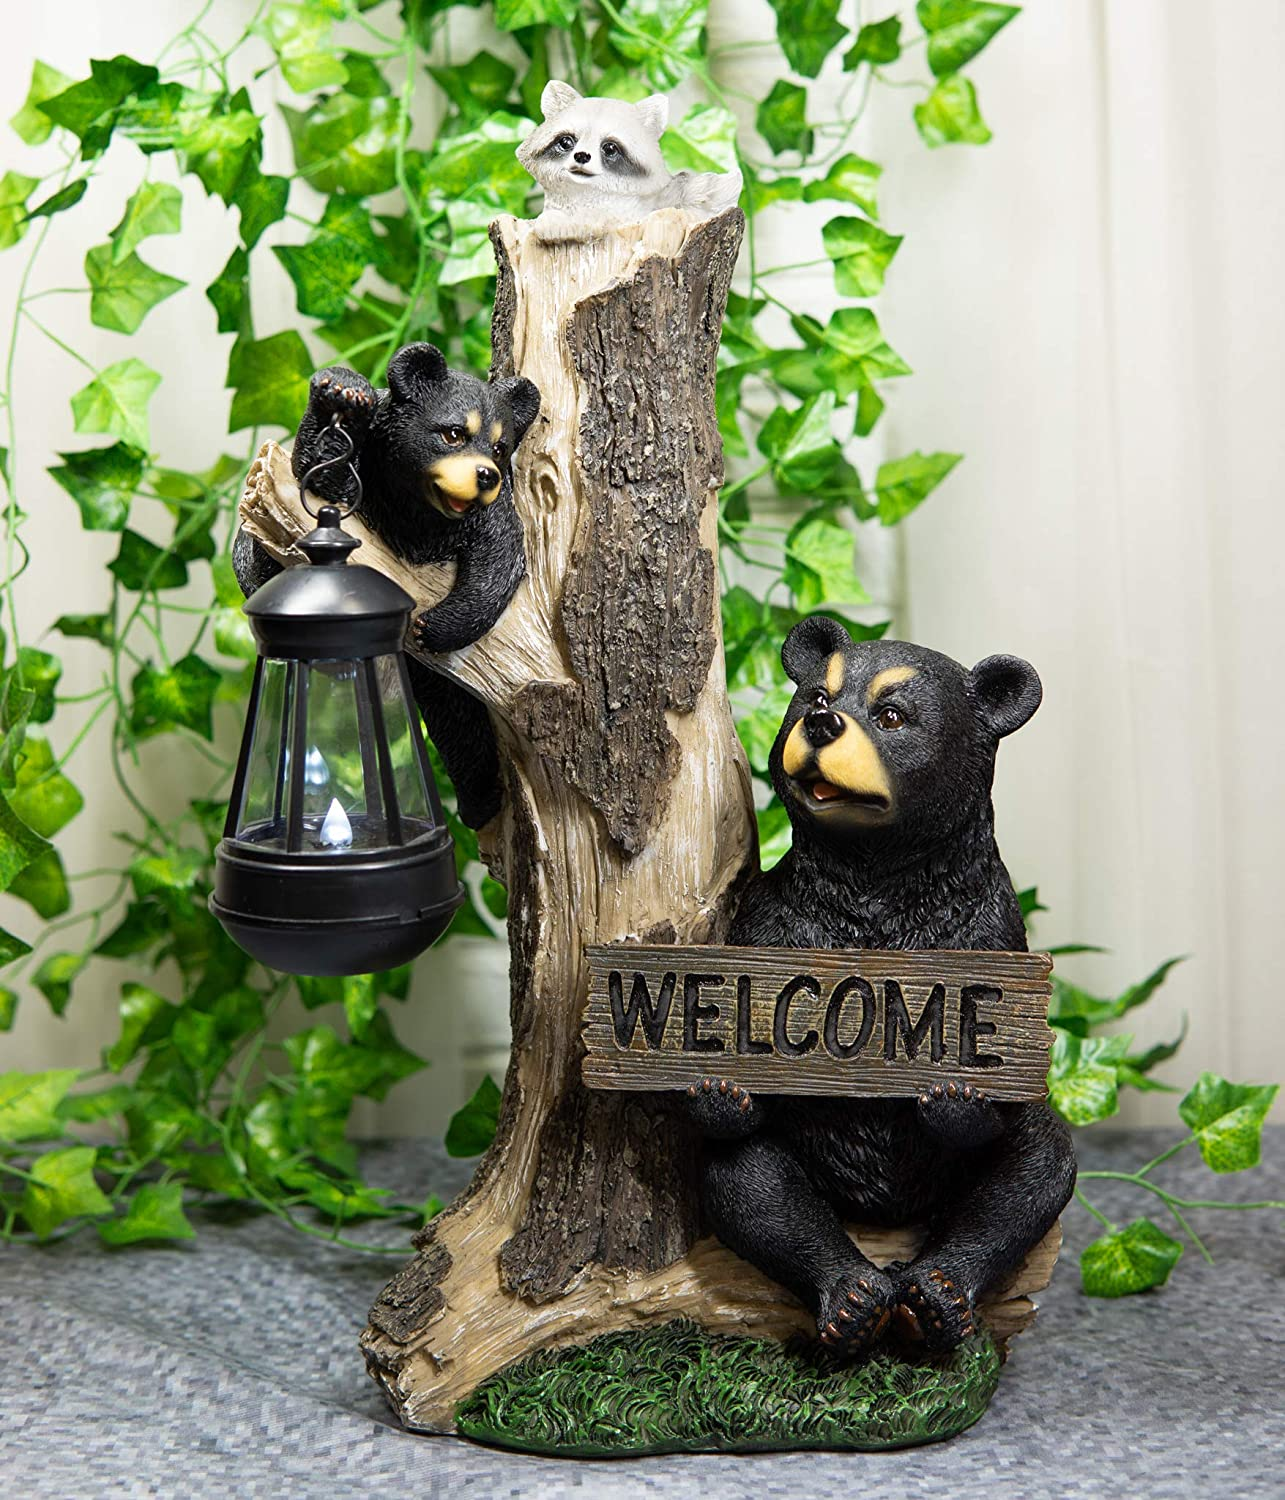 Ebros Gift Rustic Forest Black Bear Mother Sitting Near Cub and Raccoon Family by Weathered Tree Welcome Sign Statue with Solar LED Light Lantern Home Patio Path Lighter Bears Guest Greeter Figurine